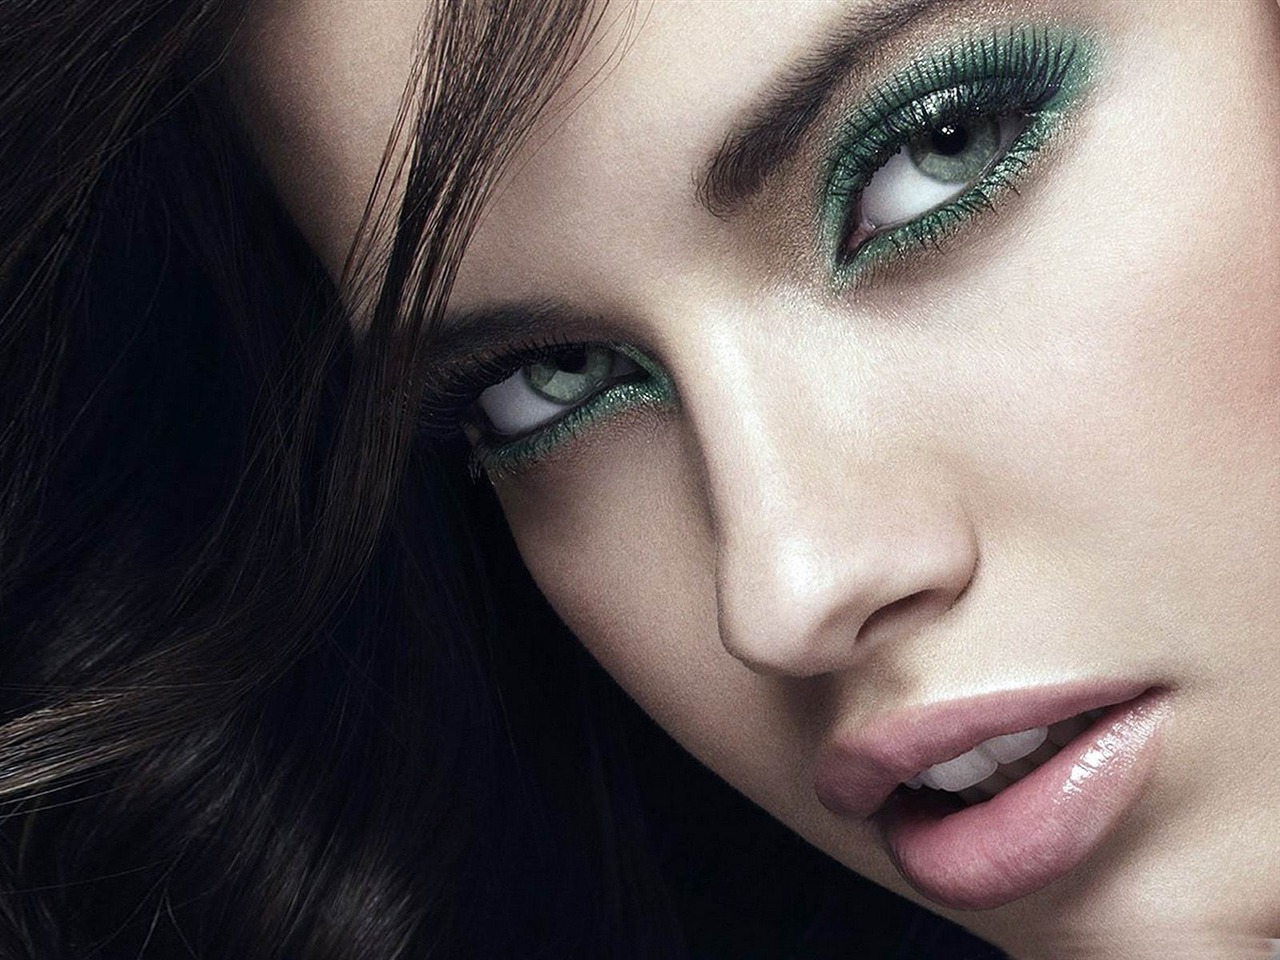 adriana lima beautiful image - photo #22